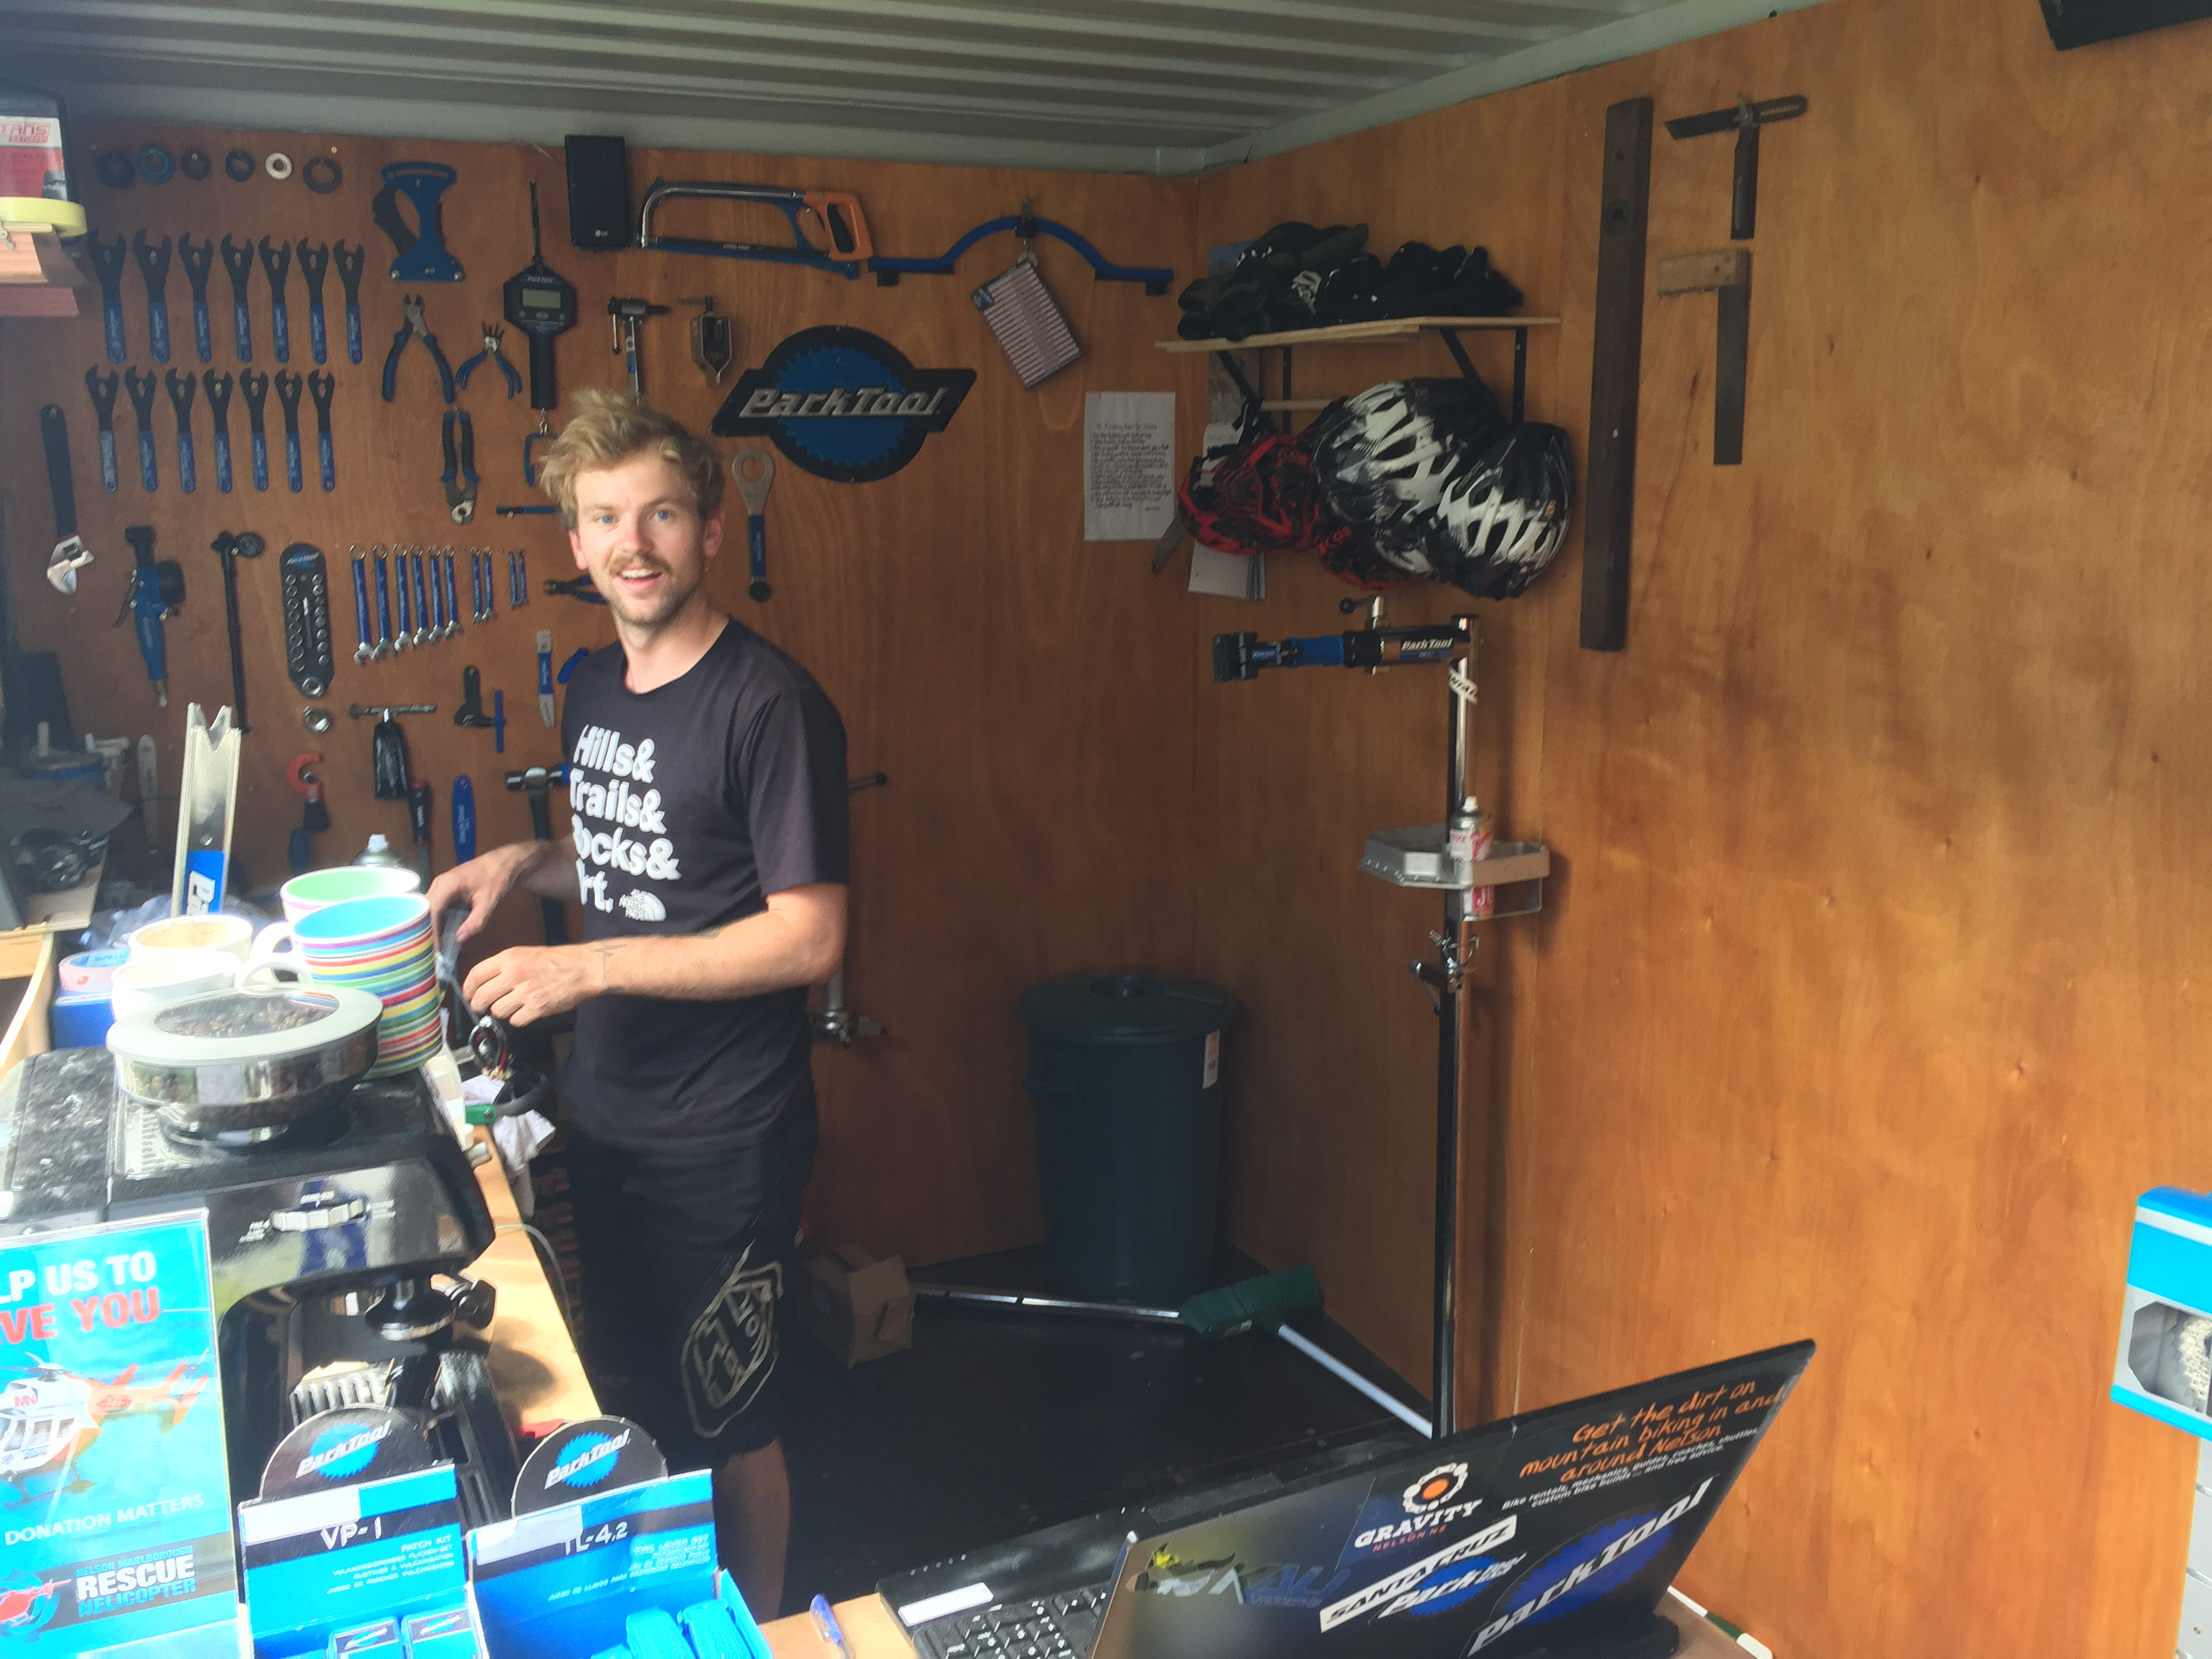 20ft Shipping Container >> Building a bike workshop in a 20ft shipping container - Gravity Nelson NZ